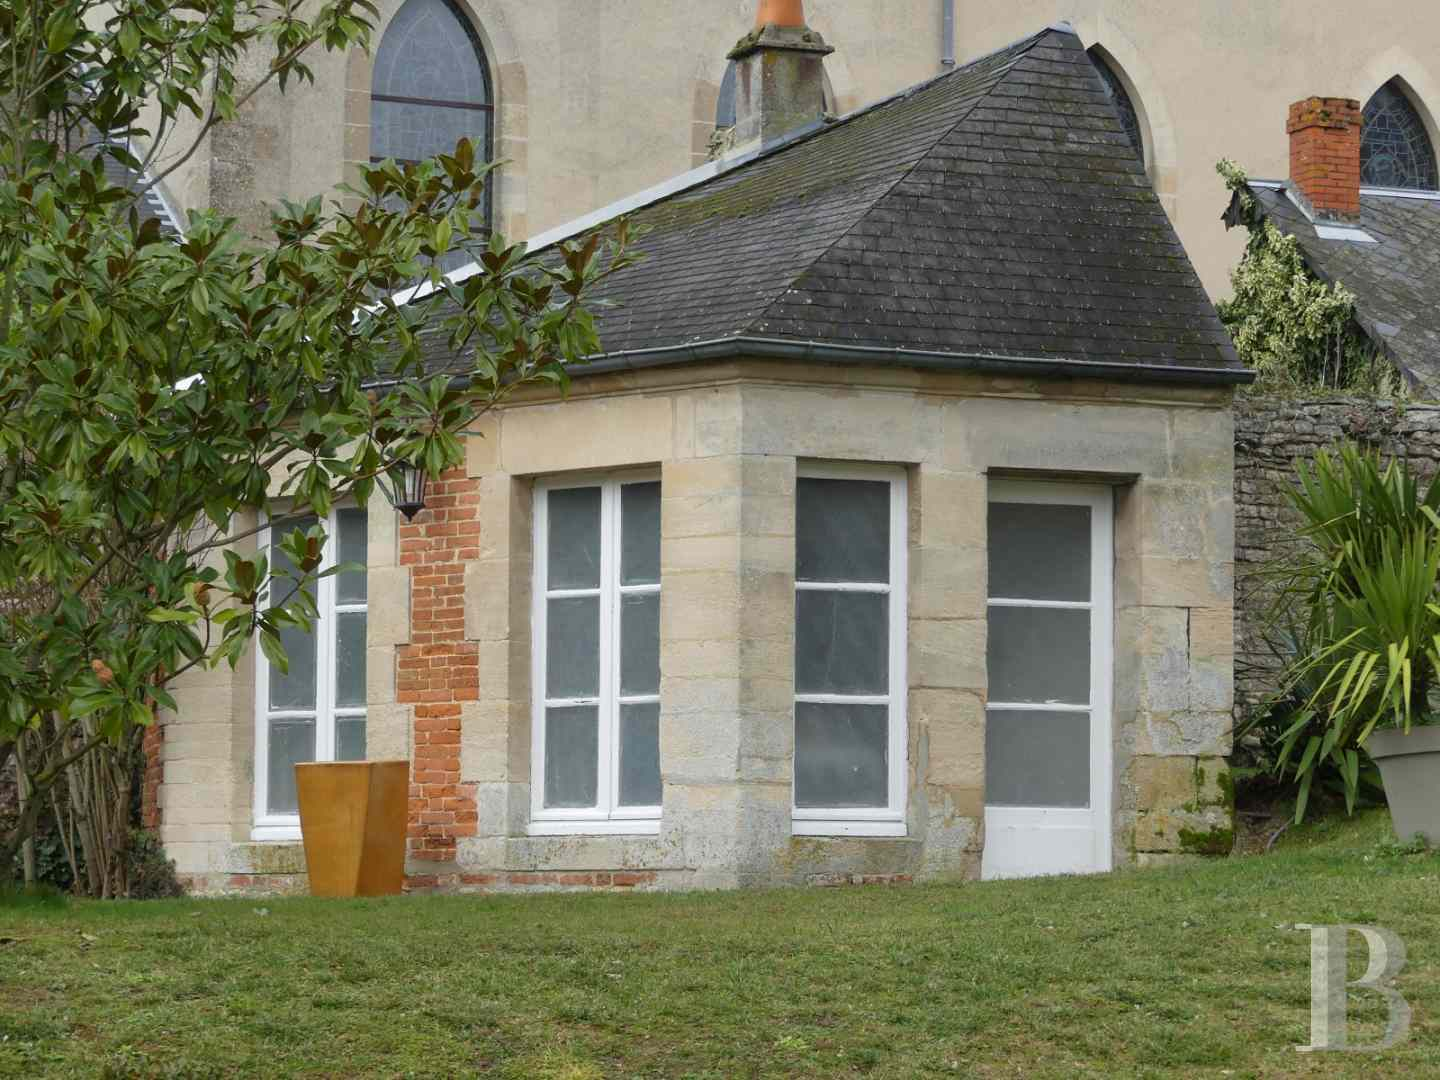 mansion houses for sale France lower normandy mansion houses - 12 zoom